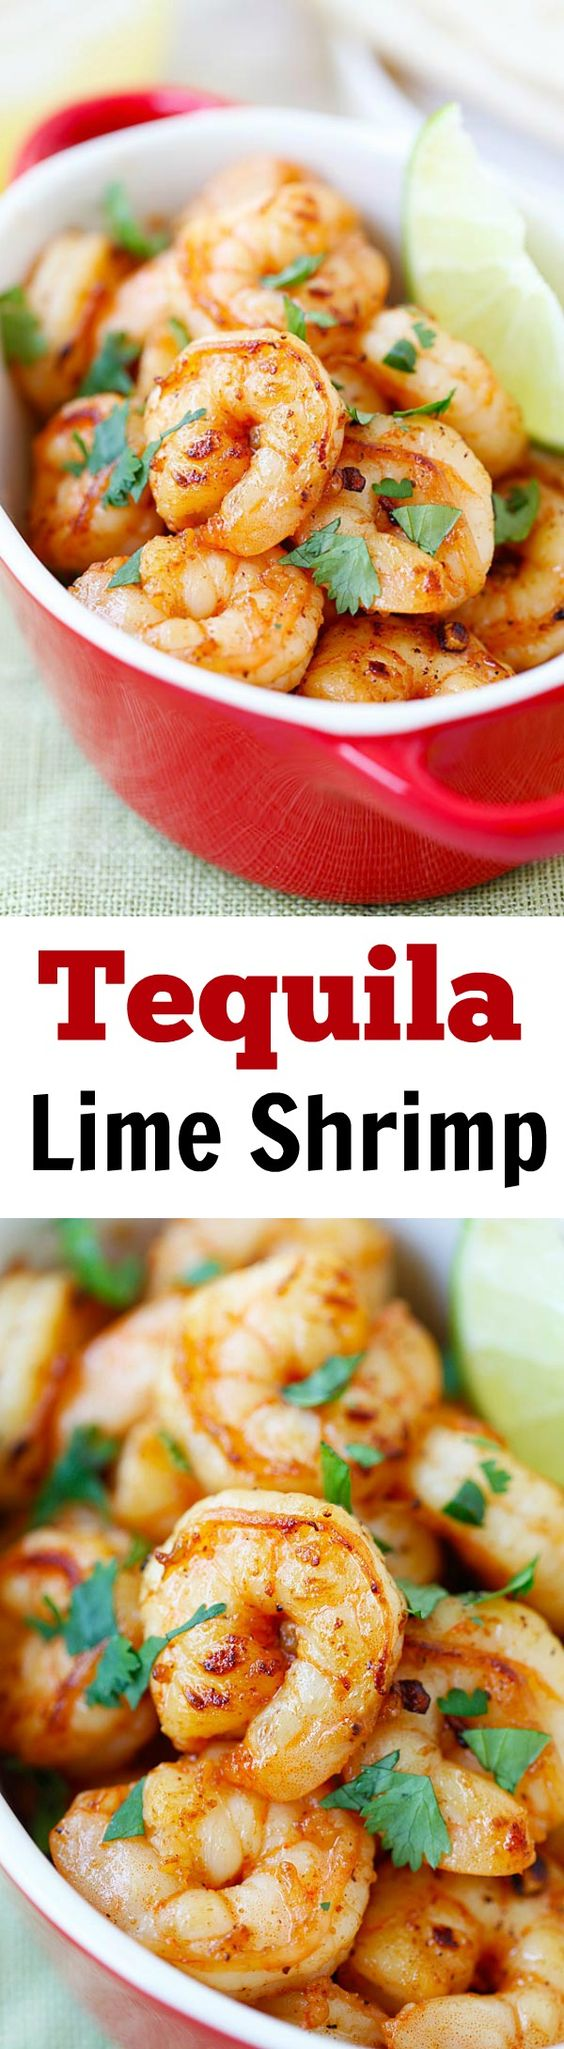 Tequila Lime Shrimp - shrimp with tequila, lime & cilantro! Crazy easy & budget friendly recipe, SO good and takes 15 mins to make! | rasamalaysia.com